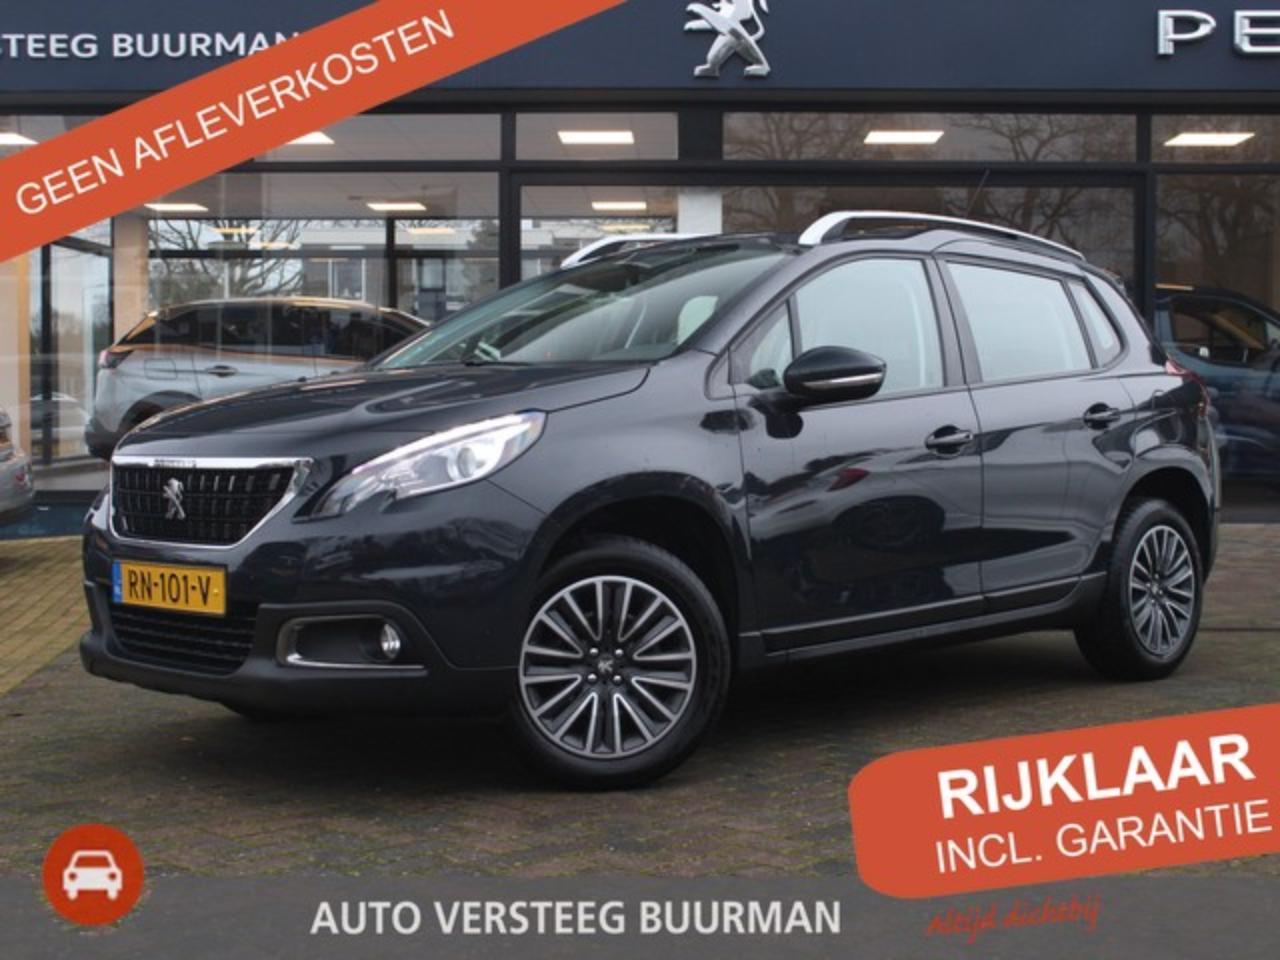 Peugeot 2008 SUV 1.2 PureTech Active airco, cruise control